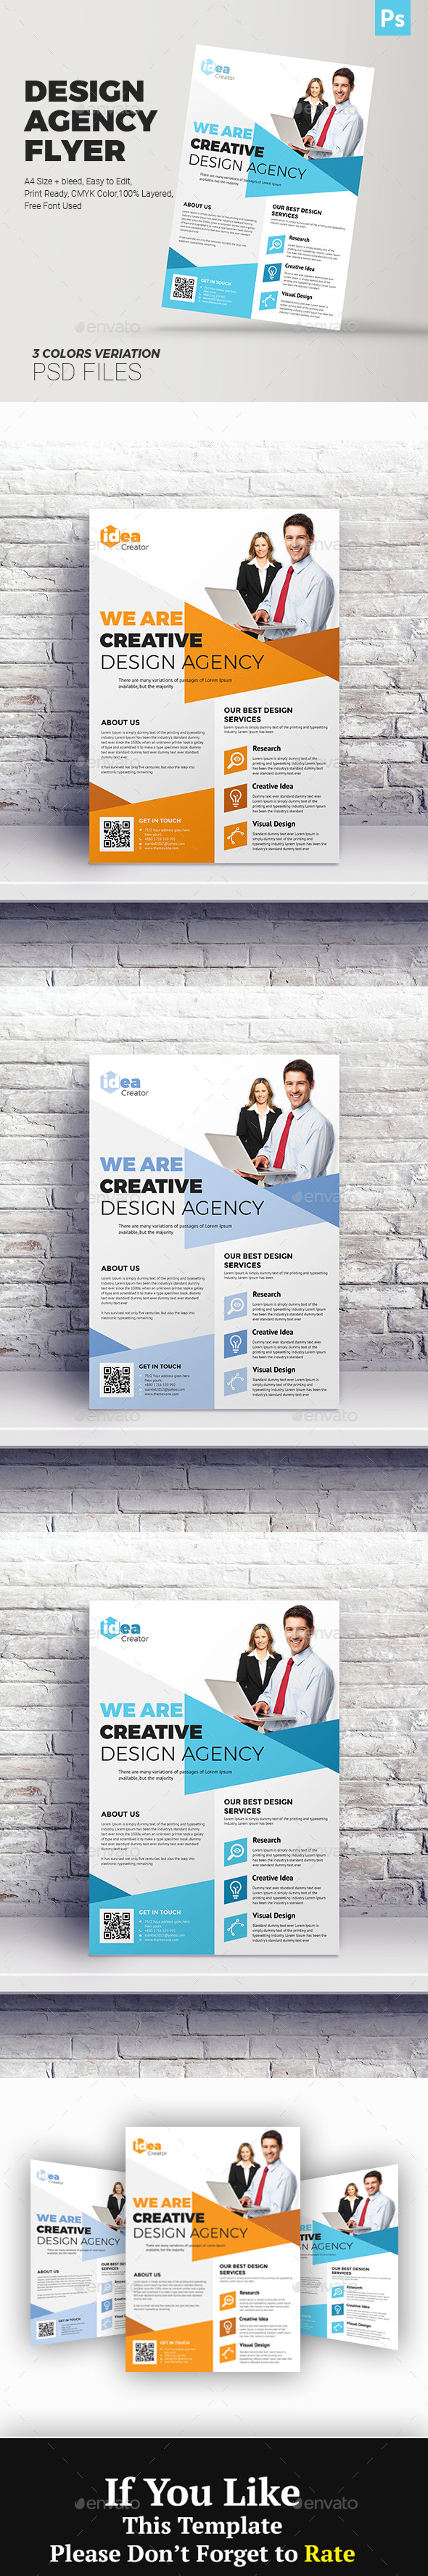 GraphicRiver Design Business Agency Flyer 20963789